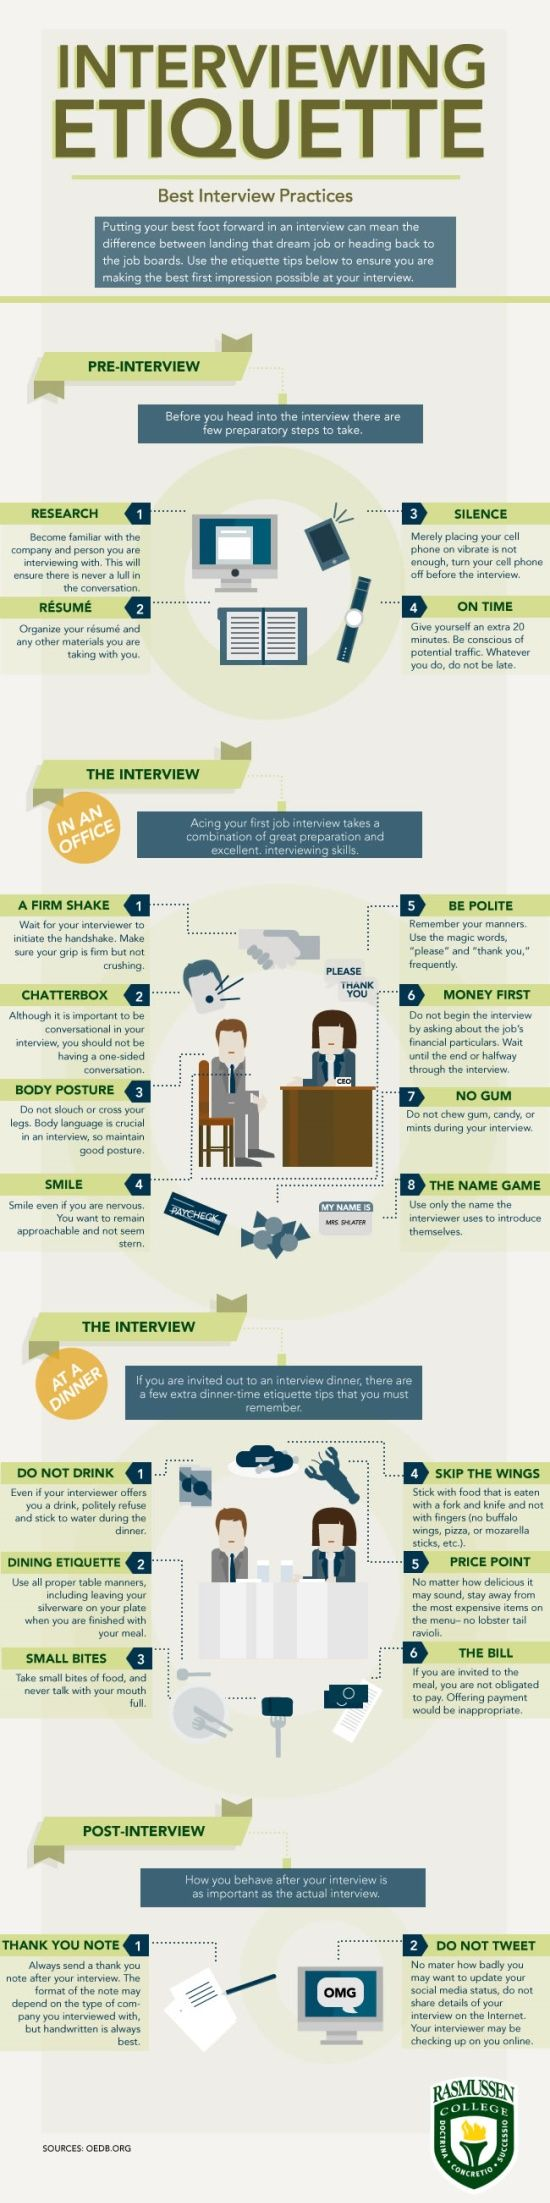 Interviewing Etiquette - Best Practices to Clear an Interview | Infographic